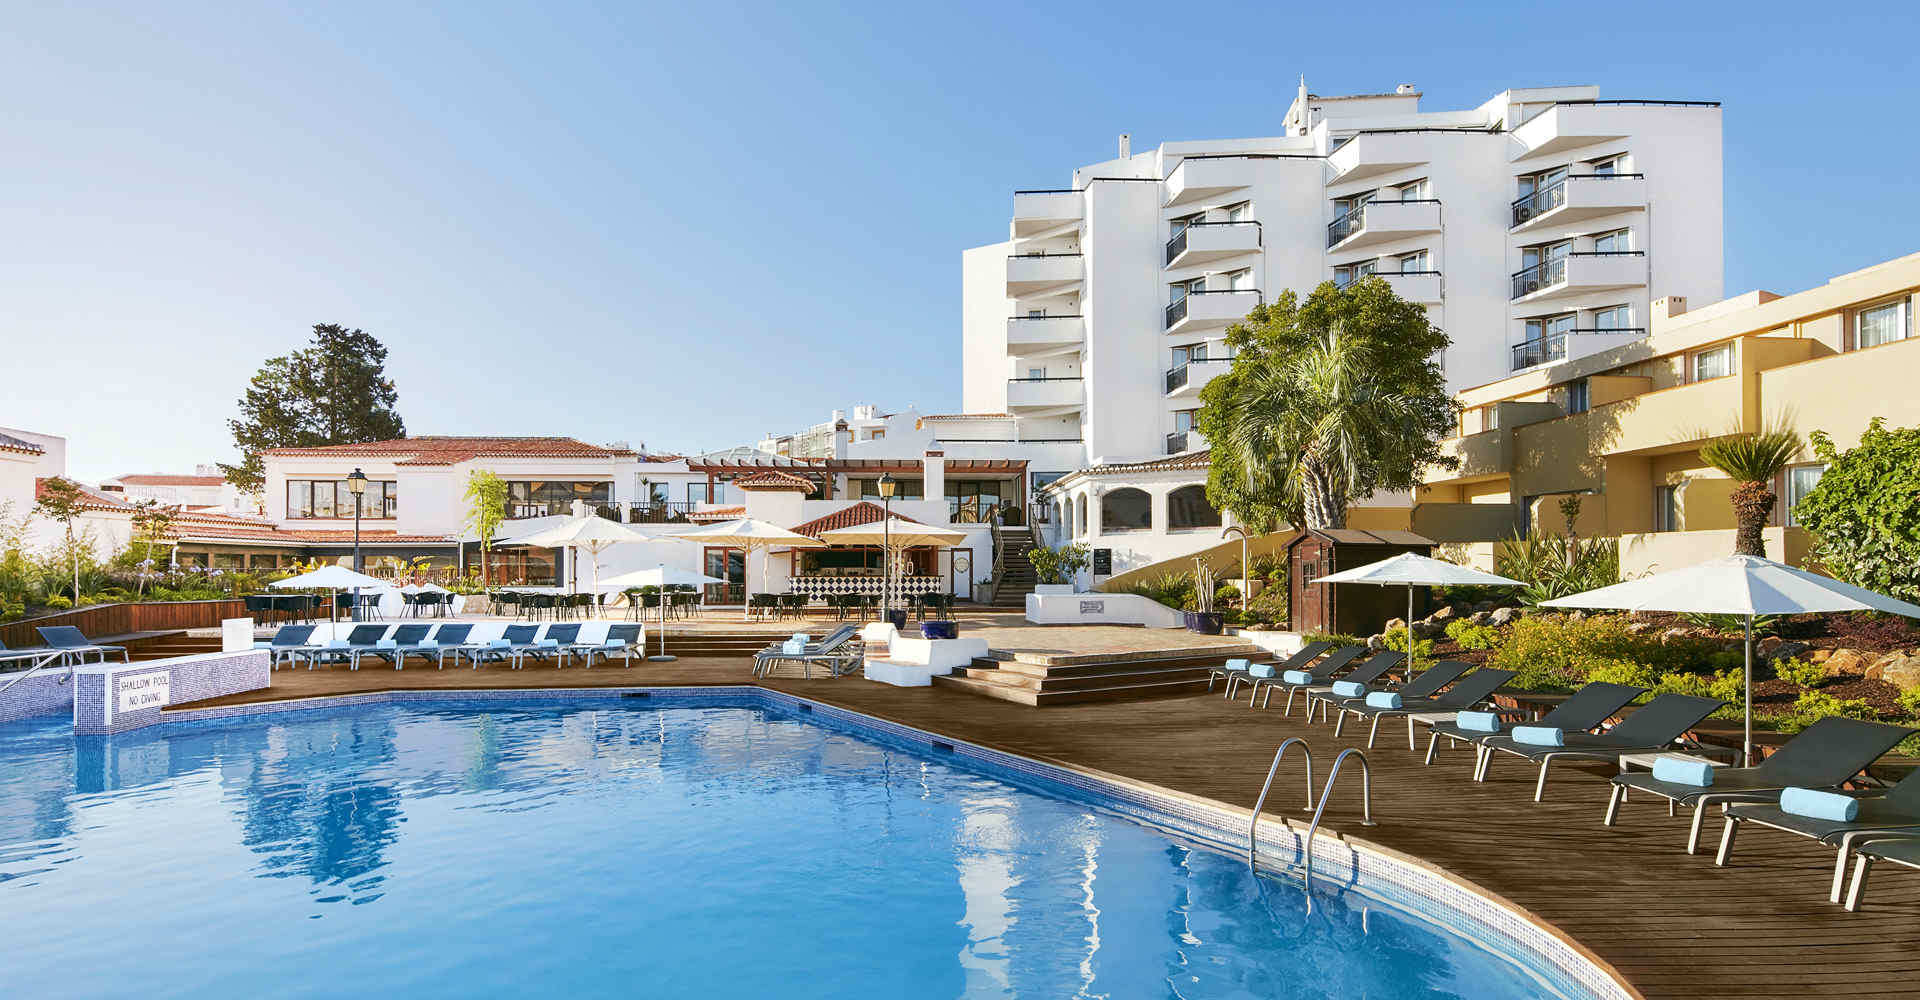 Rooms: 4 Star Hotel In Lagos, Portugal